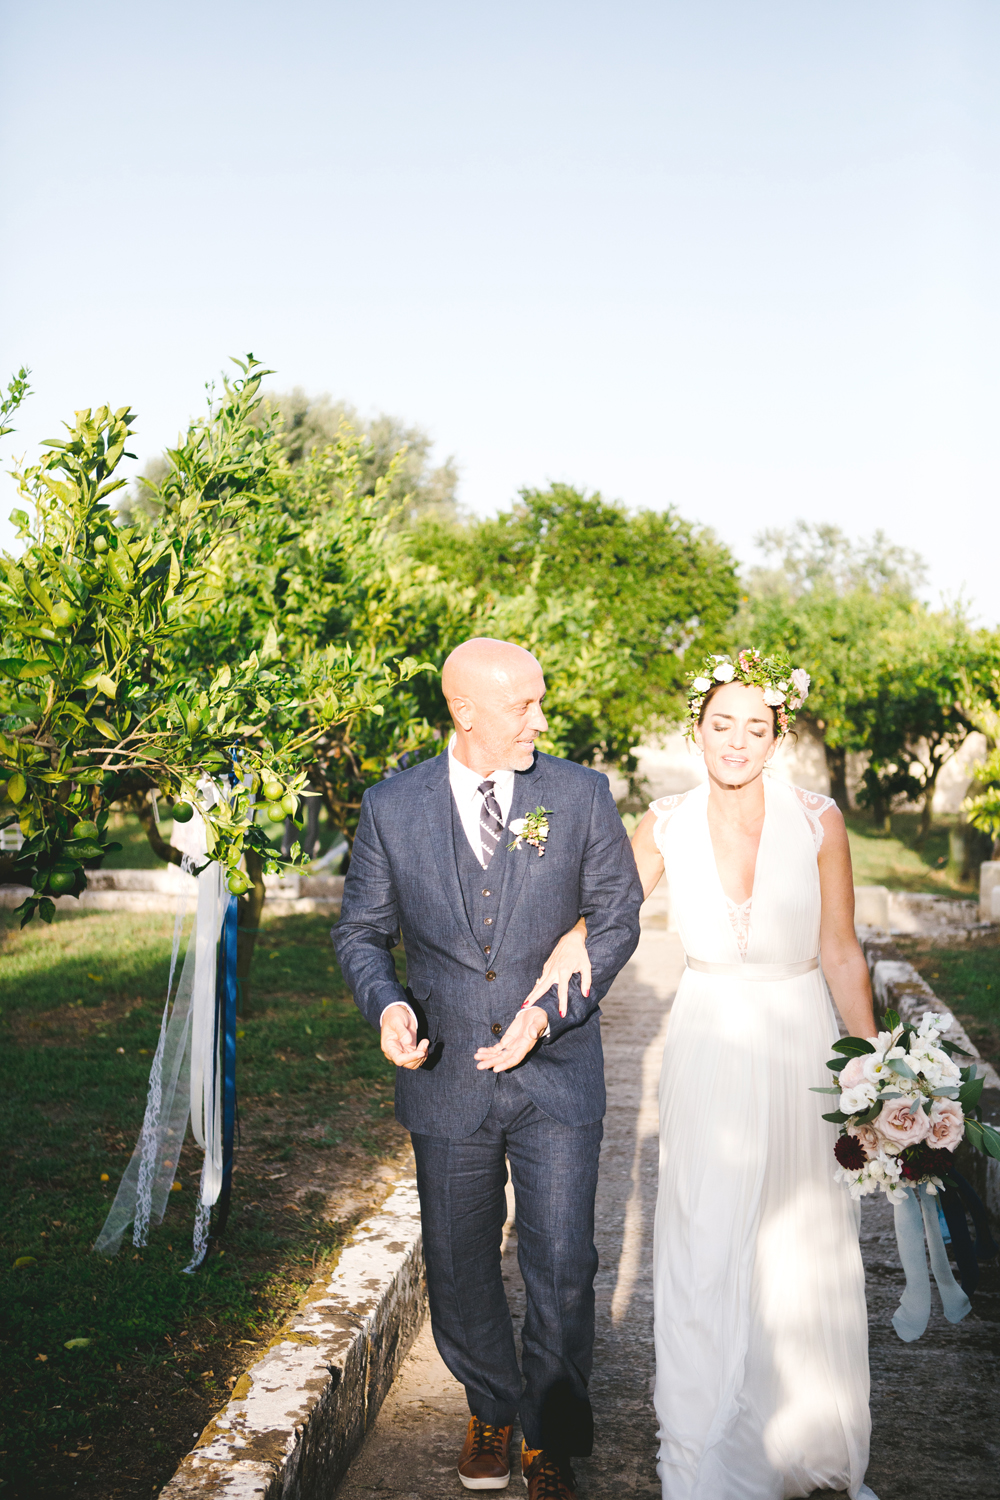 Les Amis Photo_Destination Wedding Photographer_Wedding in Puglia_BARMIC_15_363.jpg